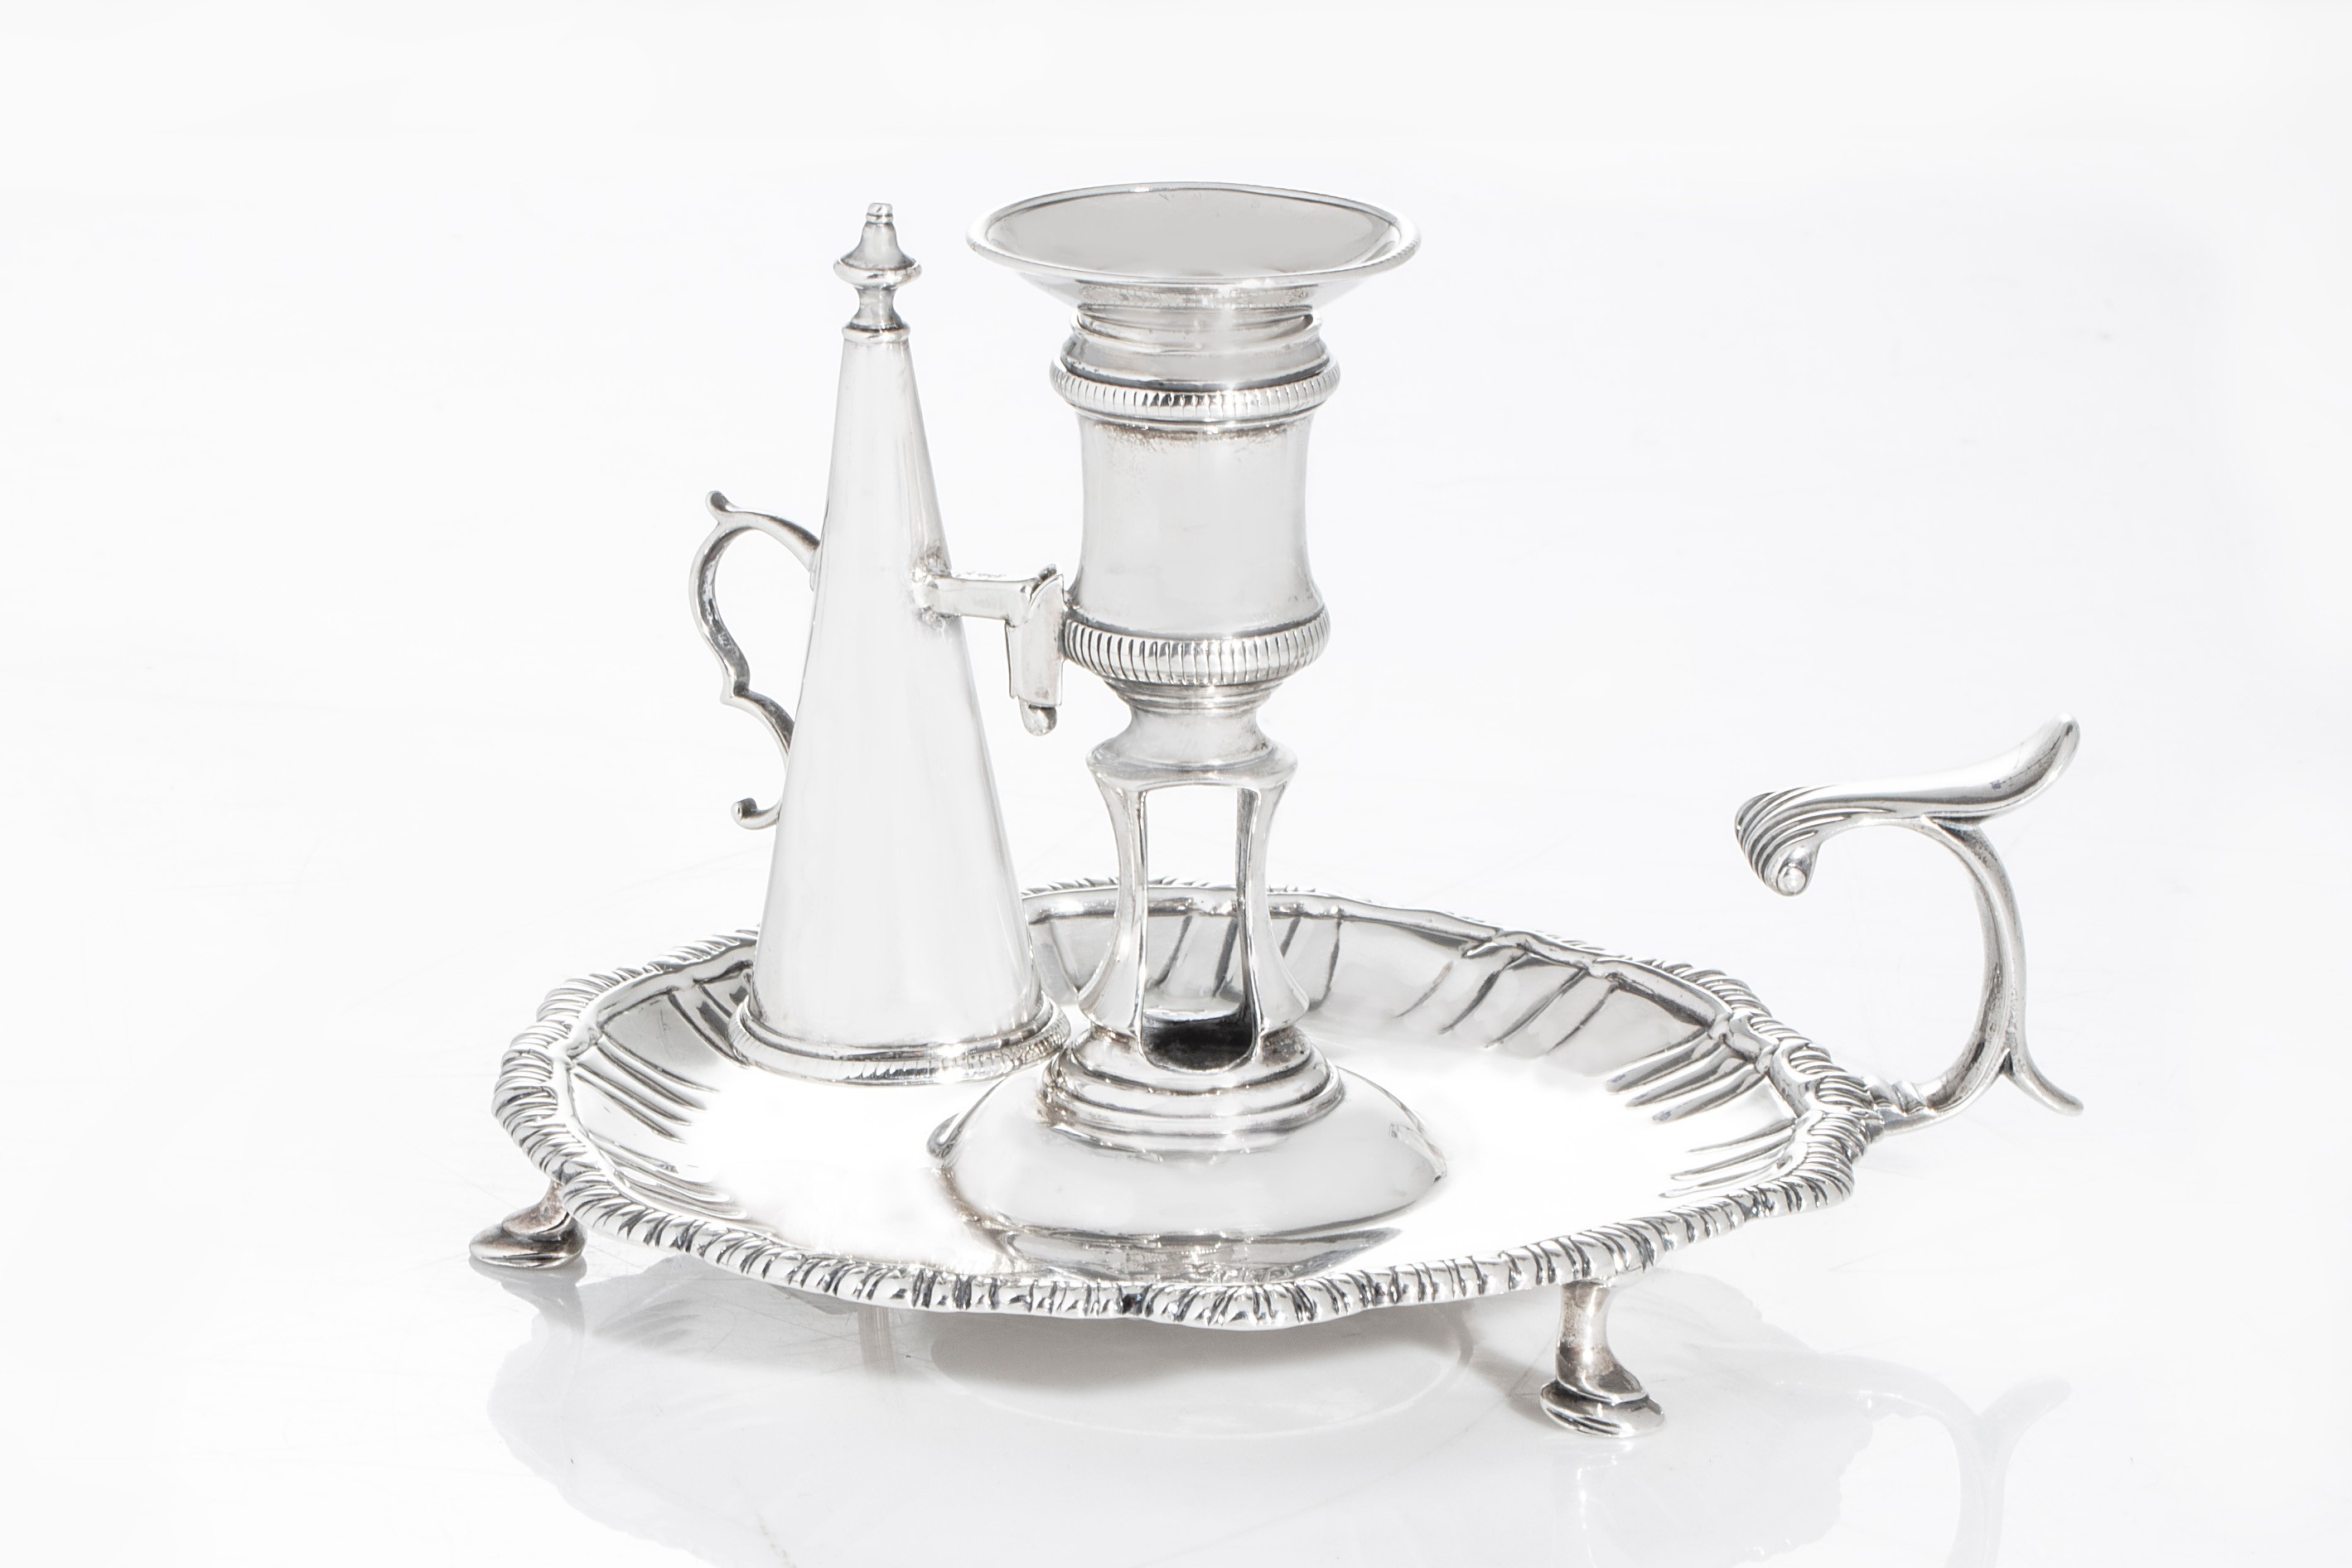 George III sterling silver chamberstick by William Cafe (London, 1762) (est. $300-$500).